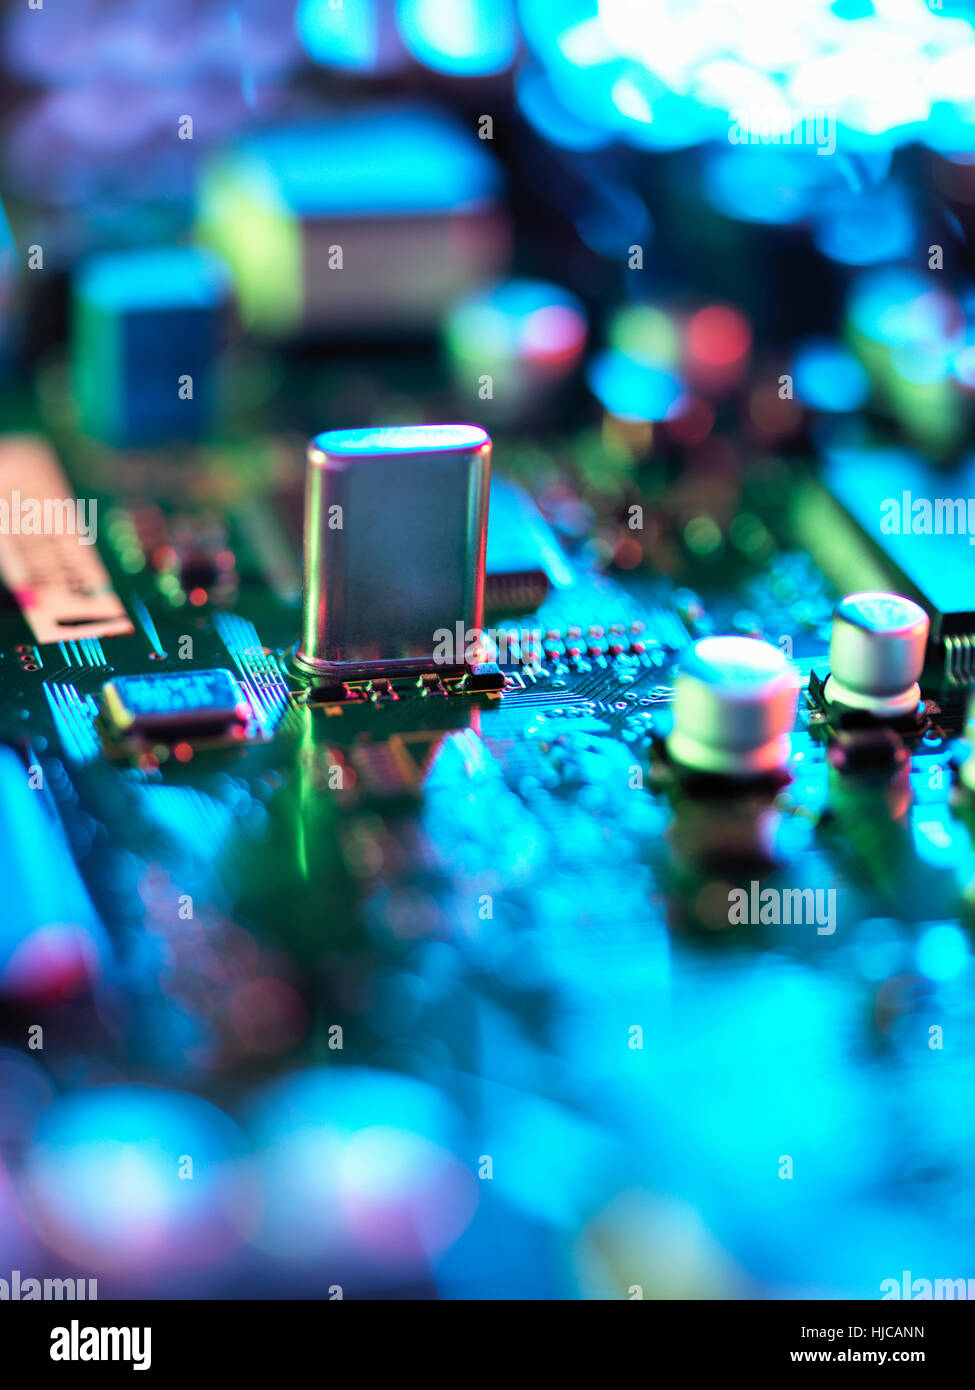 Close up of hi-tech electronic circuit board - Stock Image